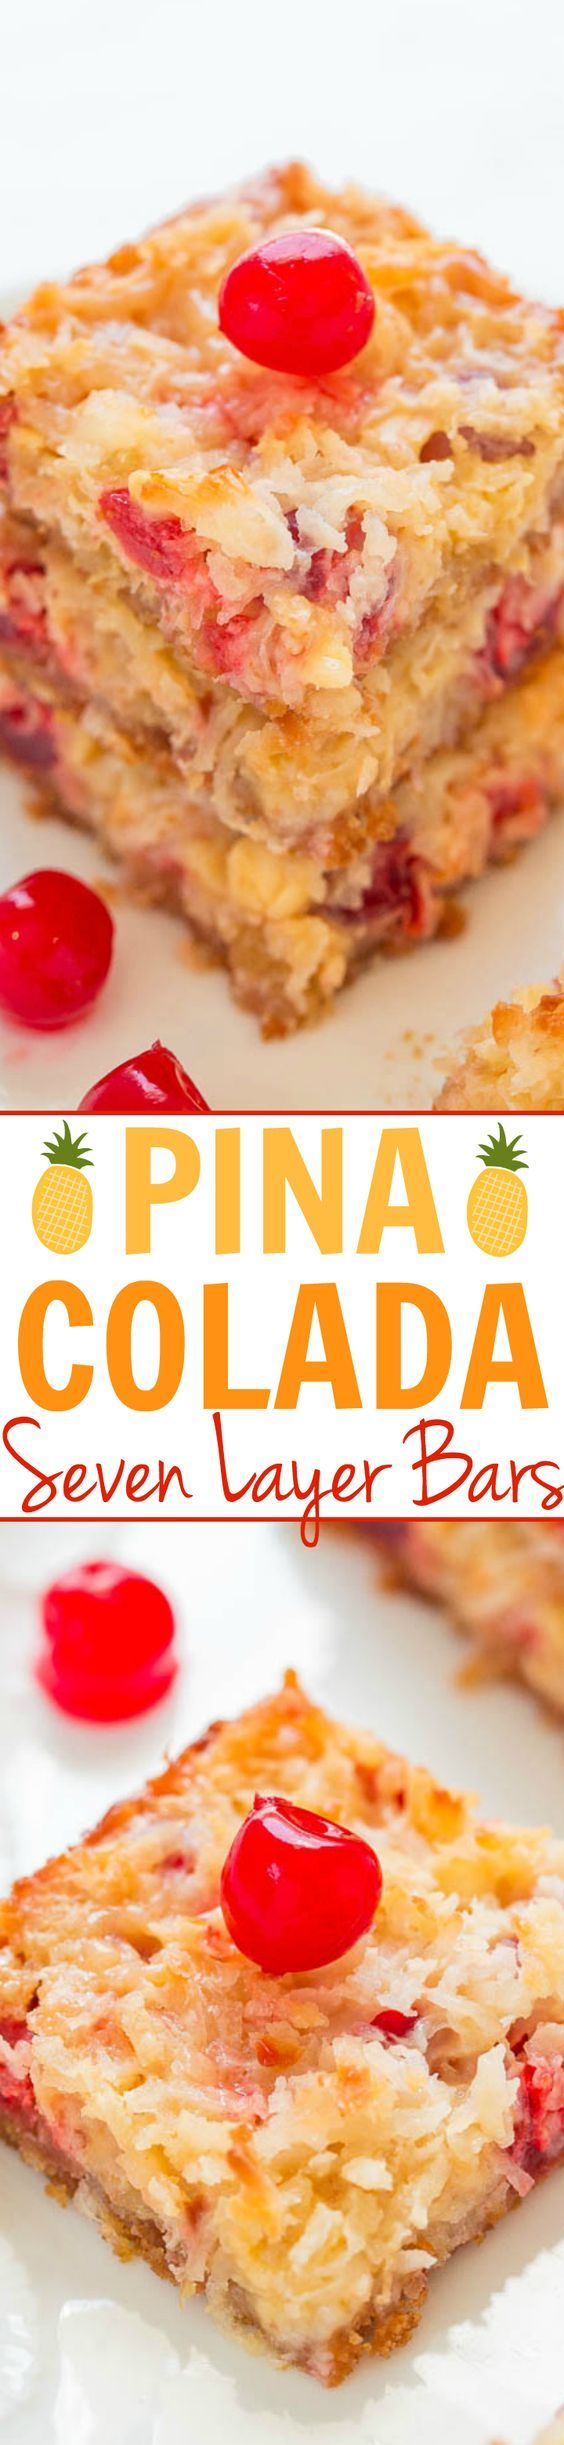 I combined my love of pina coladas and seven layer barsinto a fast, easy, no-mixer dessert that tasteslike the tropics. The bars are like eating a pina colada rather than drinking one. Like any good hello dolly, magic, or seven layer bar (the names are different but the concept is the same) this one starts …